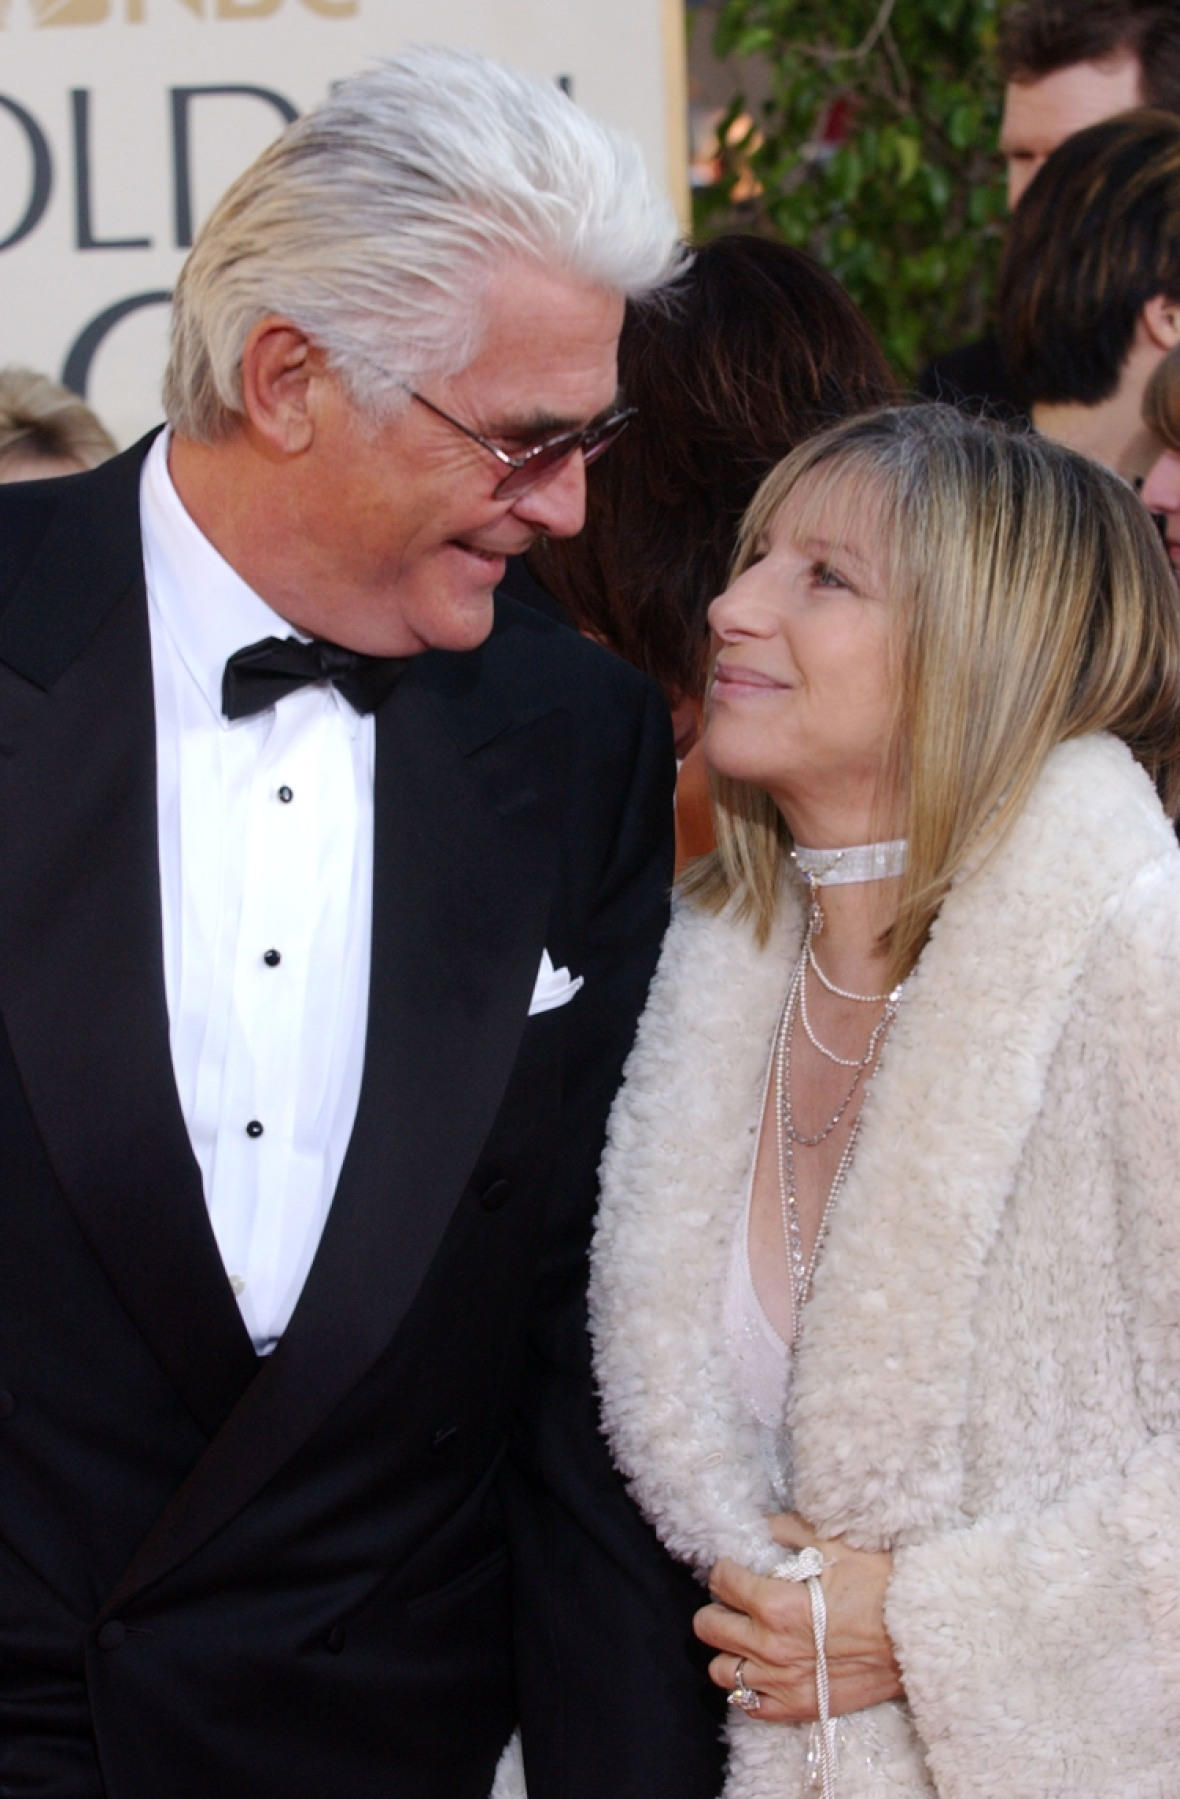 barbra streisand and james brolin 2 getty images